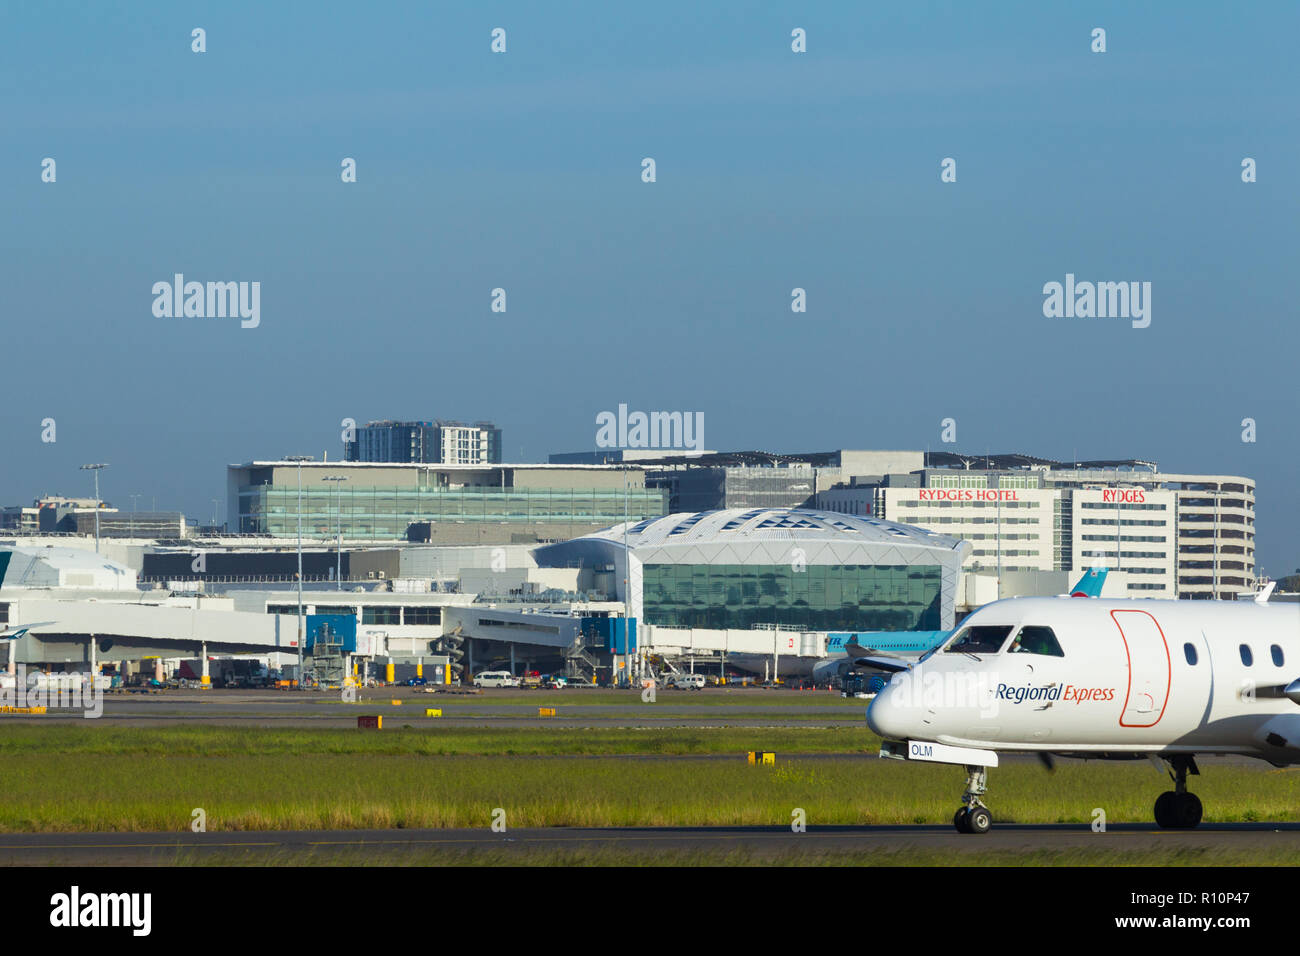 Detail from Sydney (Kingsford Smith) Airport in Sydney, Australia, looking towards the International Terminal on the western side of the airport. Pictured: a REX Regional Express aircraft taxying. - Stock Image